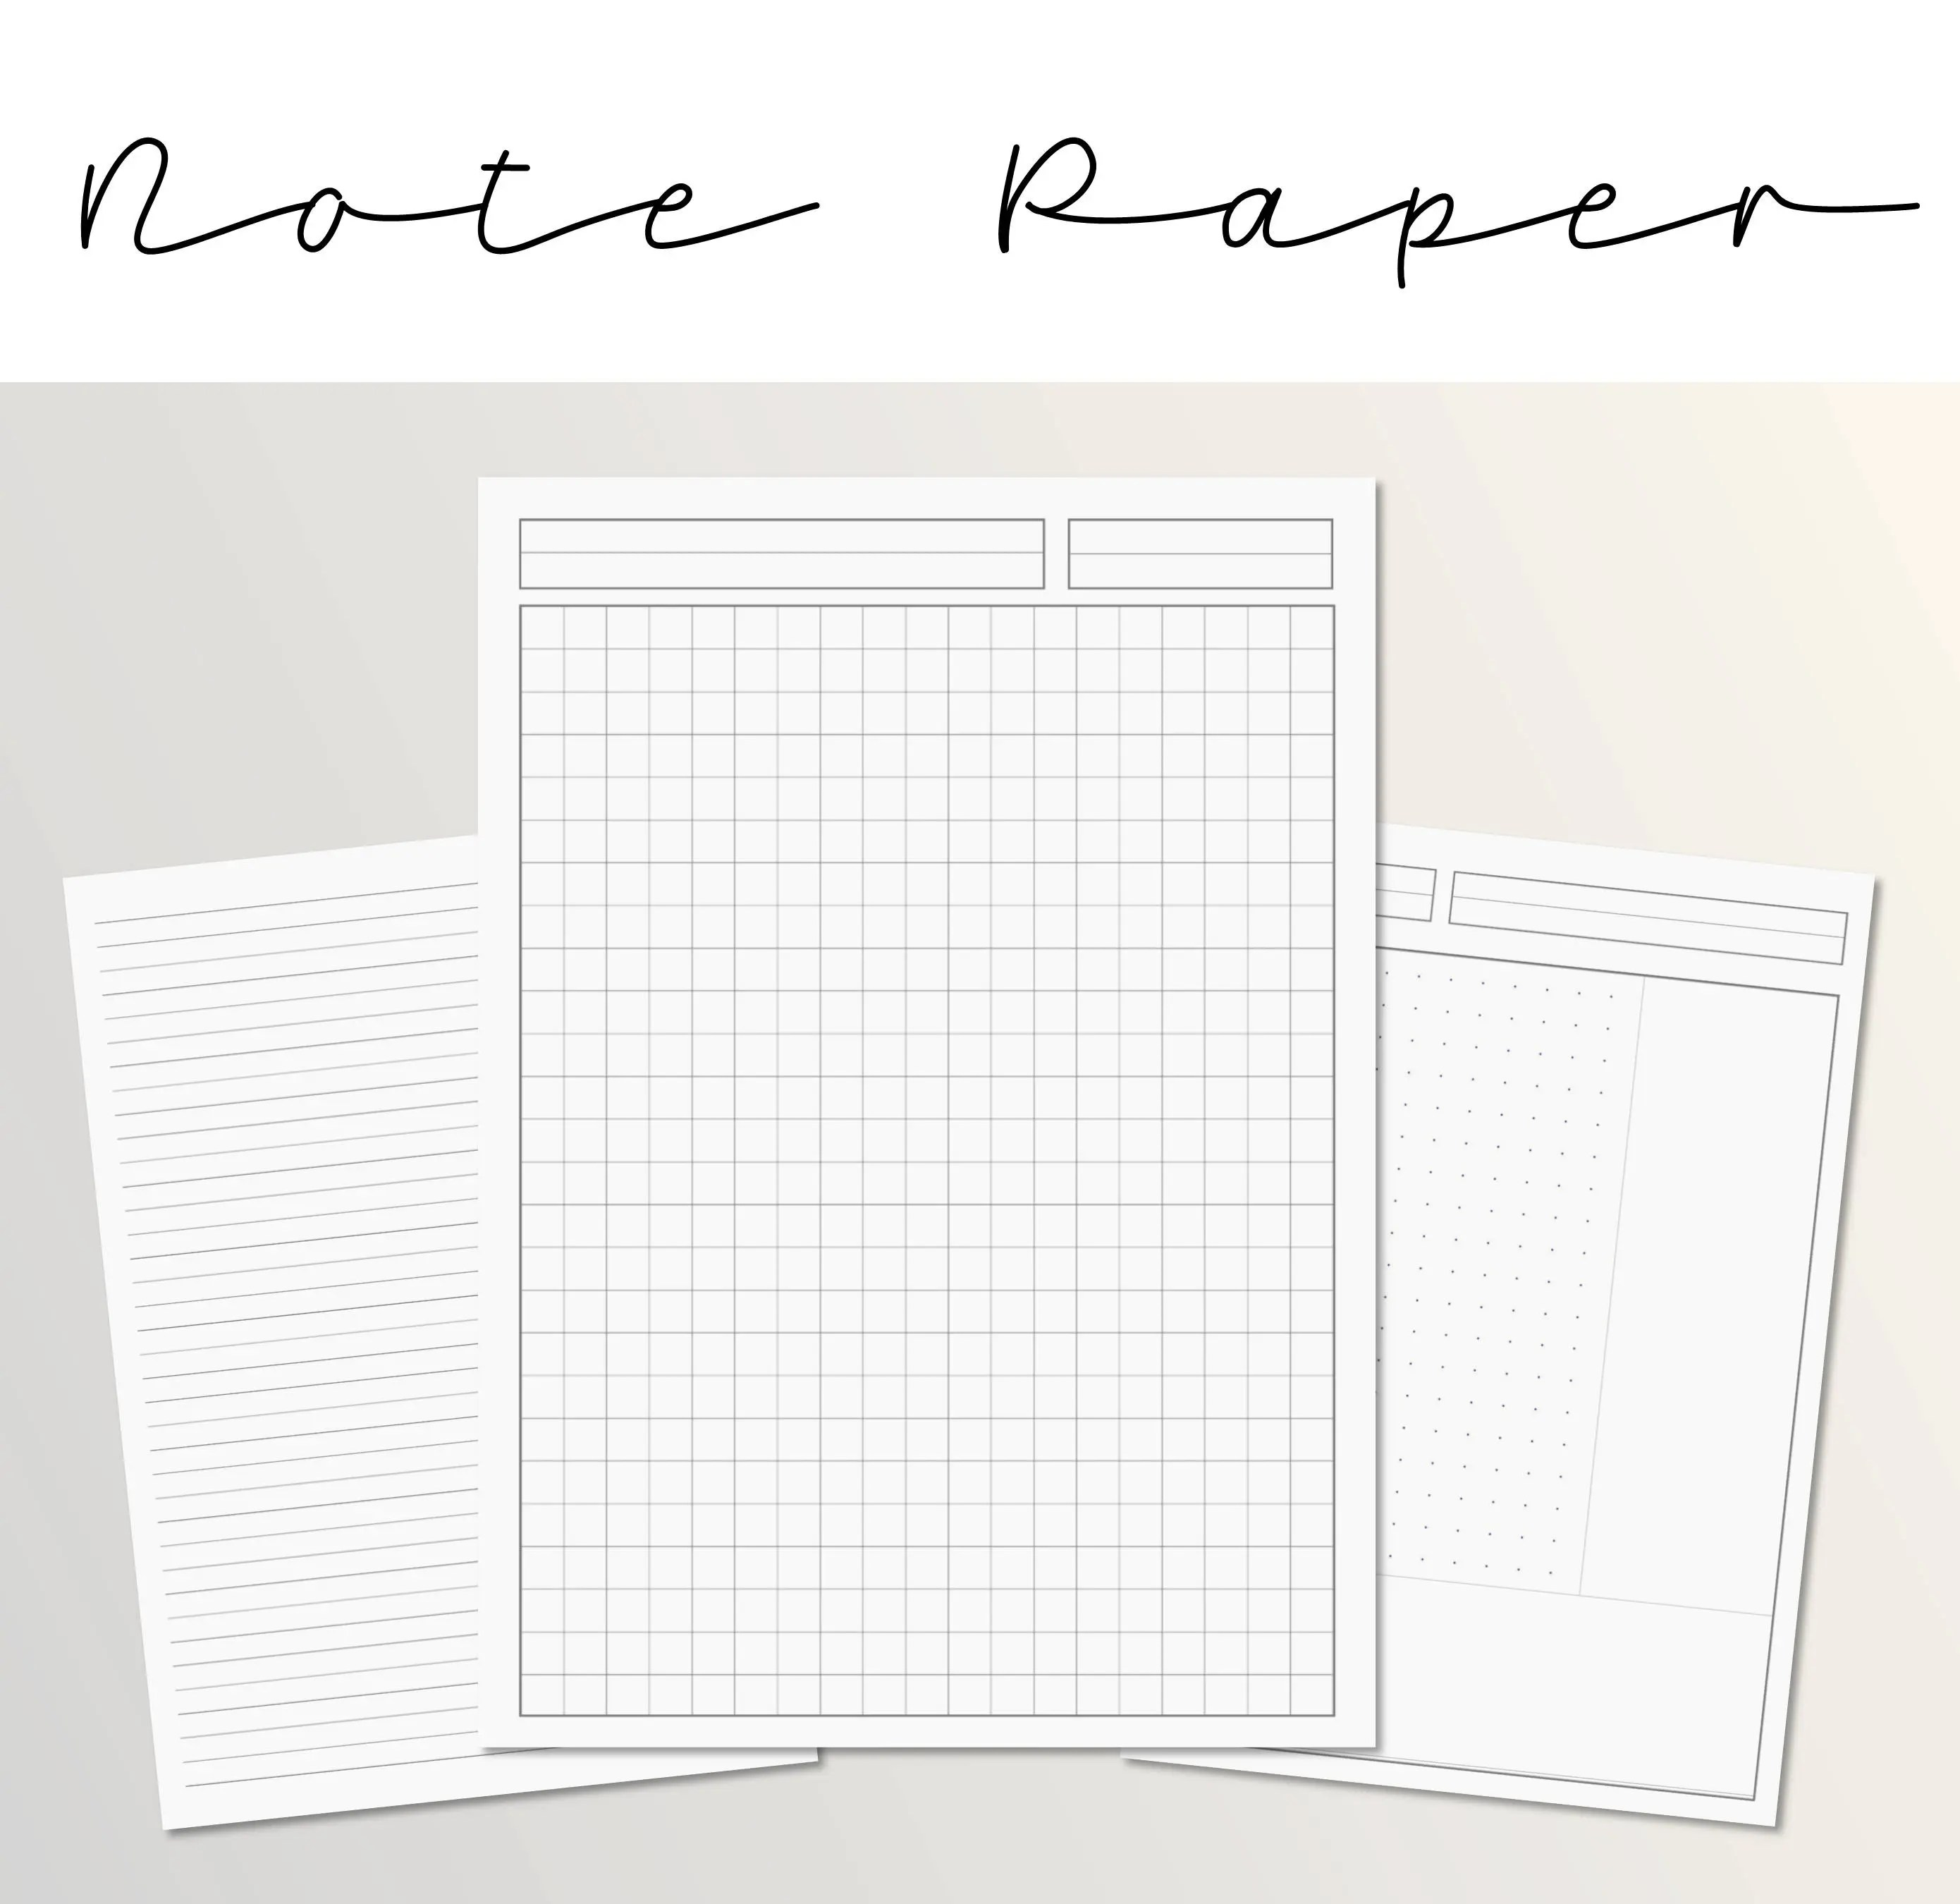 Note Paper Template Lecture Note Paper Dotted Grid Lined - note paper template